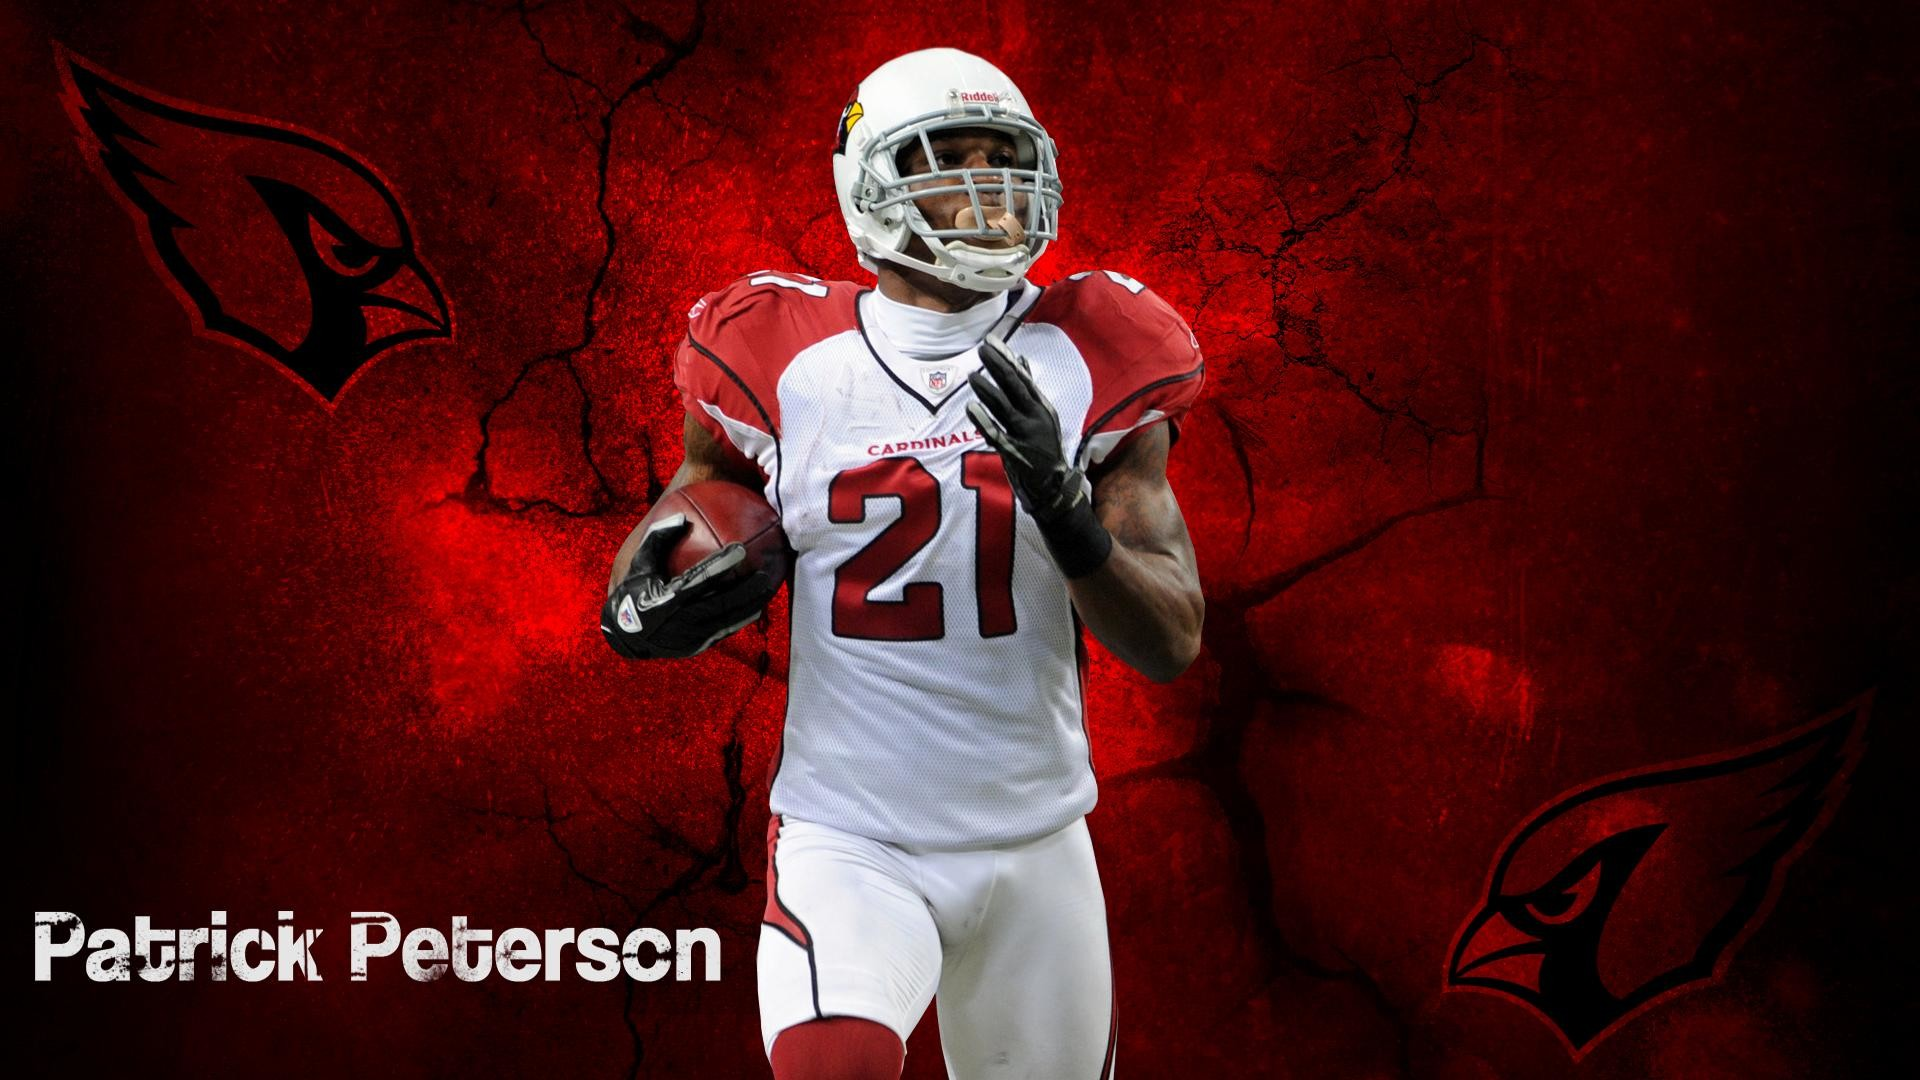 1920x1080 Patrick-Peterson-Arizona-Cardinals-Wallpaper